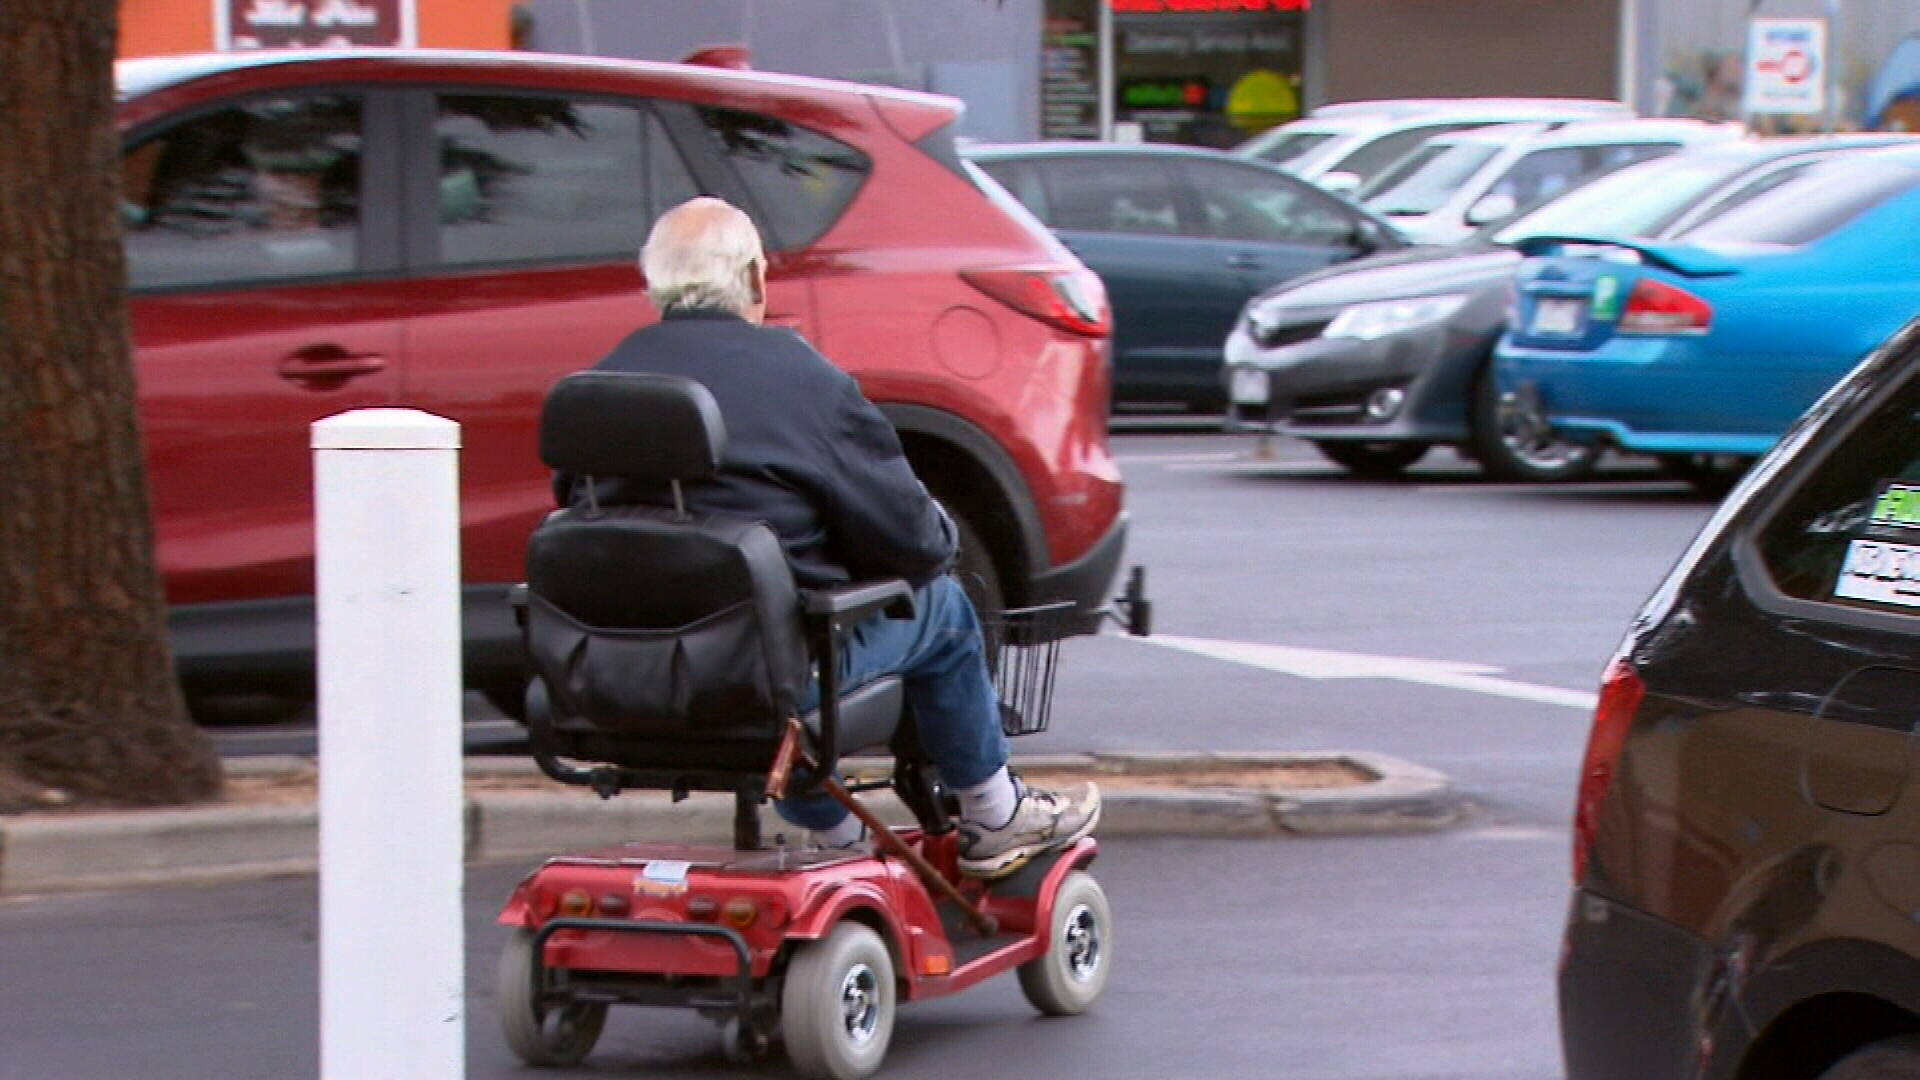 Call for new laws to protect elderly and disabled